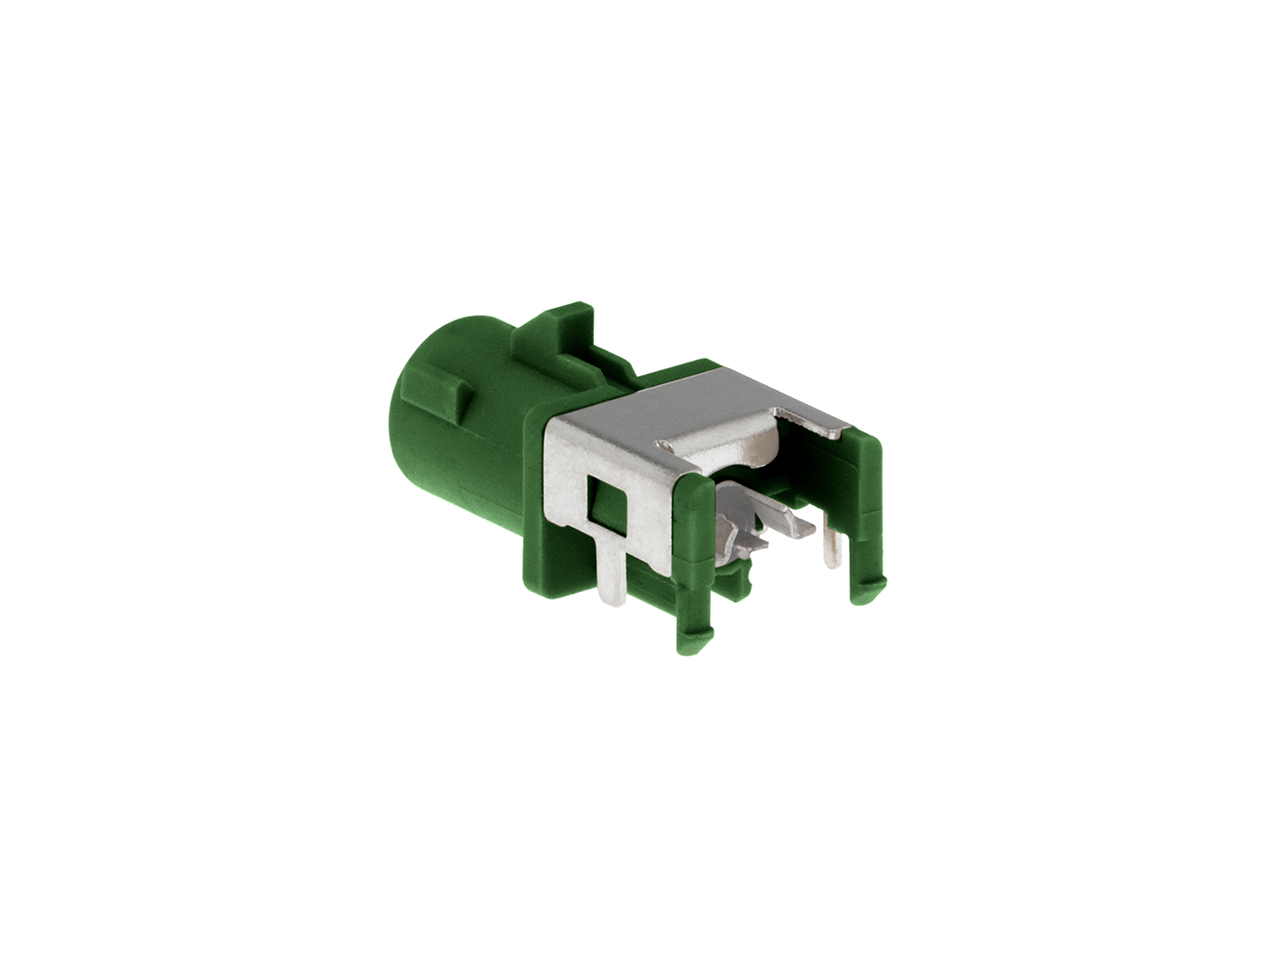 Device side connectors (pin-in-paste) | Robert Karst GmbH